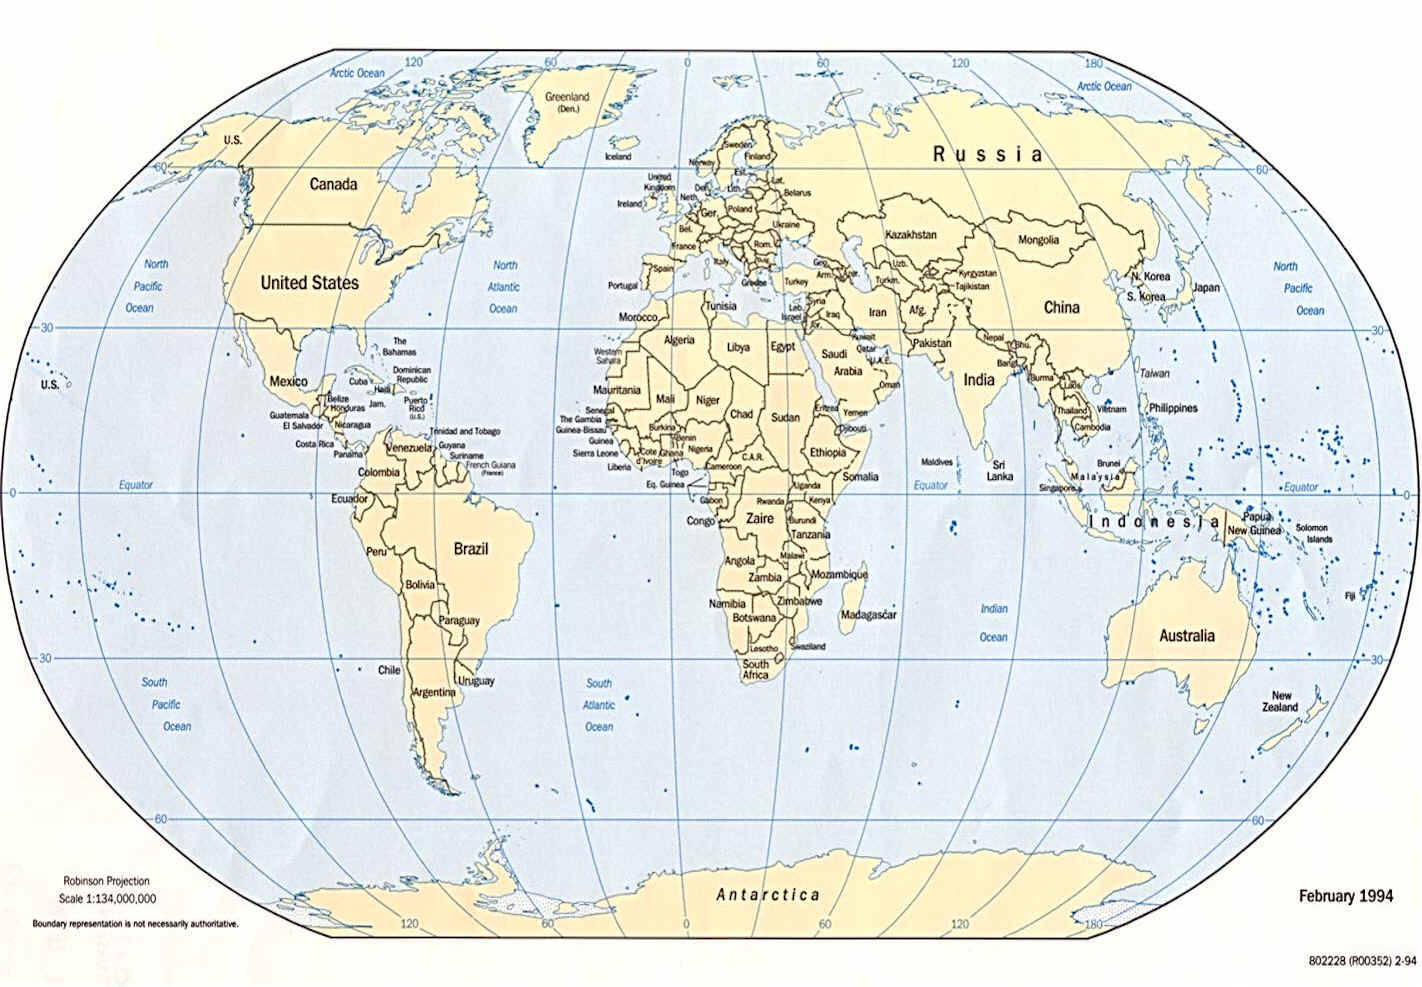 Wallpaper Map Of The World WallpaperSafari - Map of the world with countries labeled